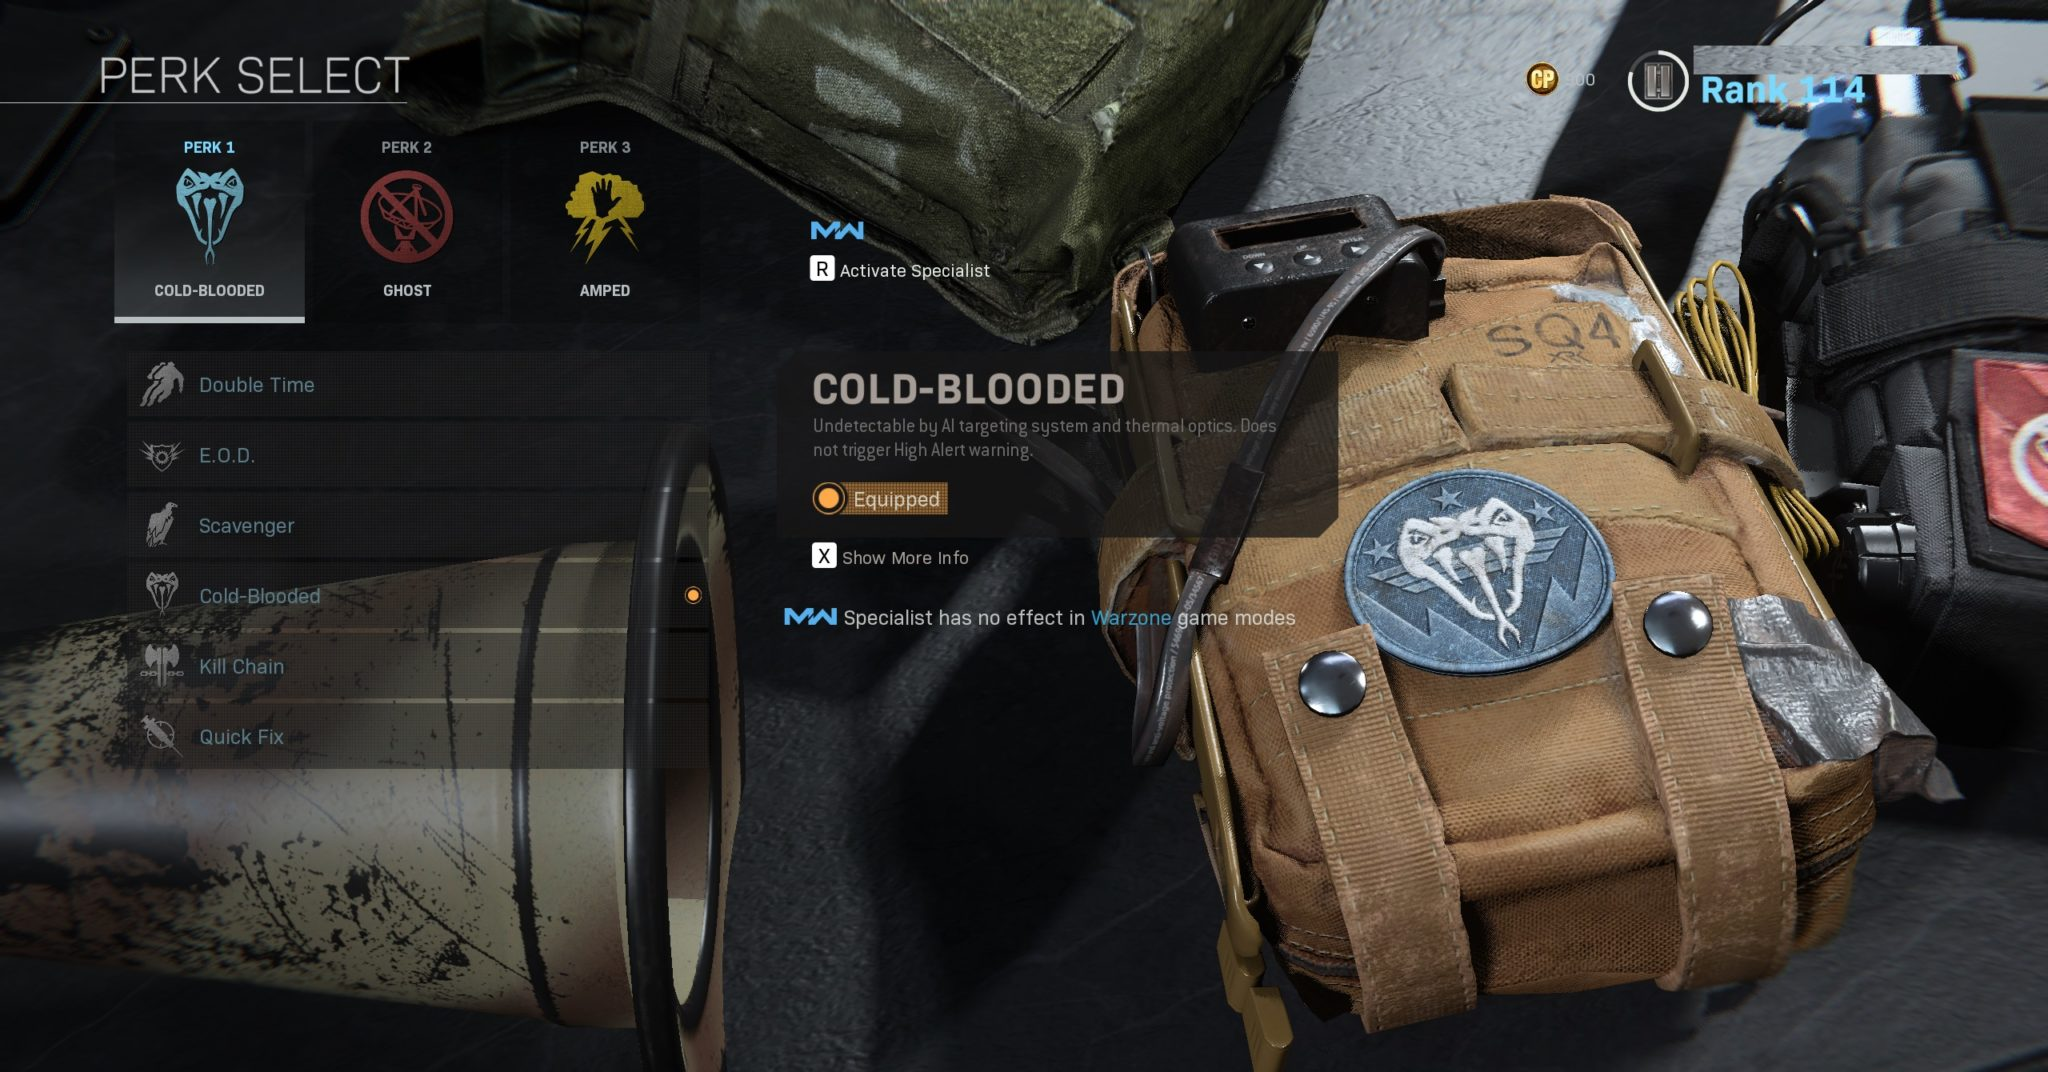 Cold-Blooded perk